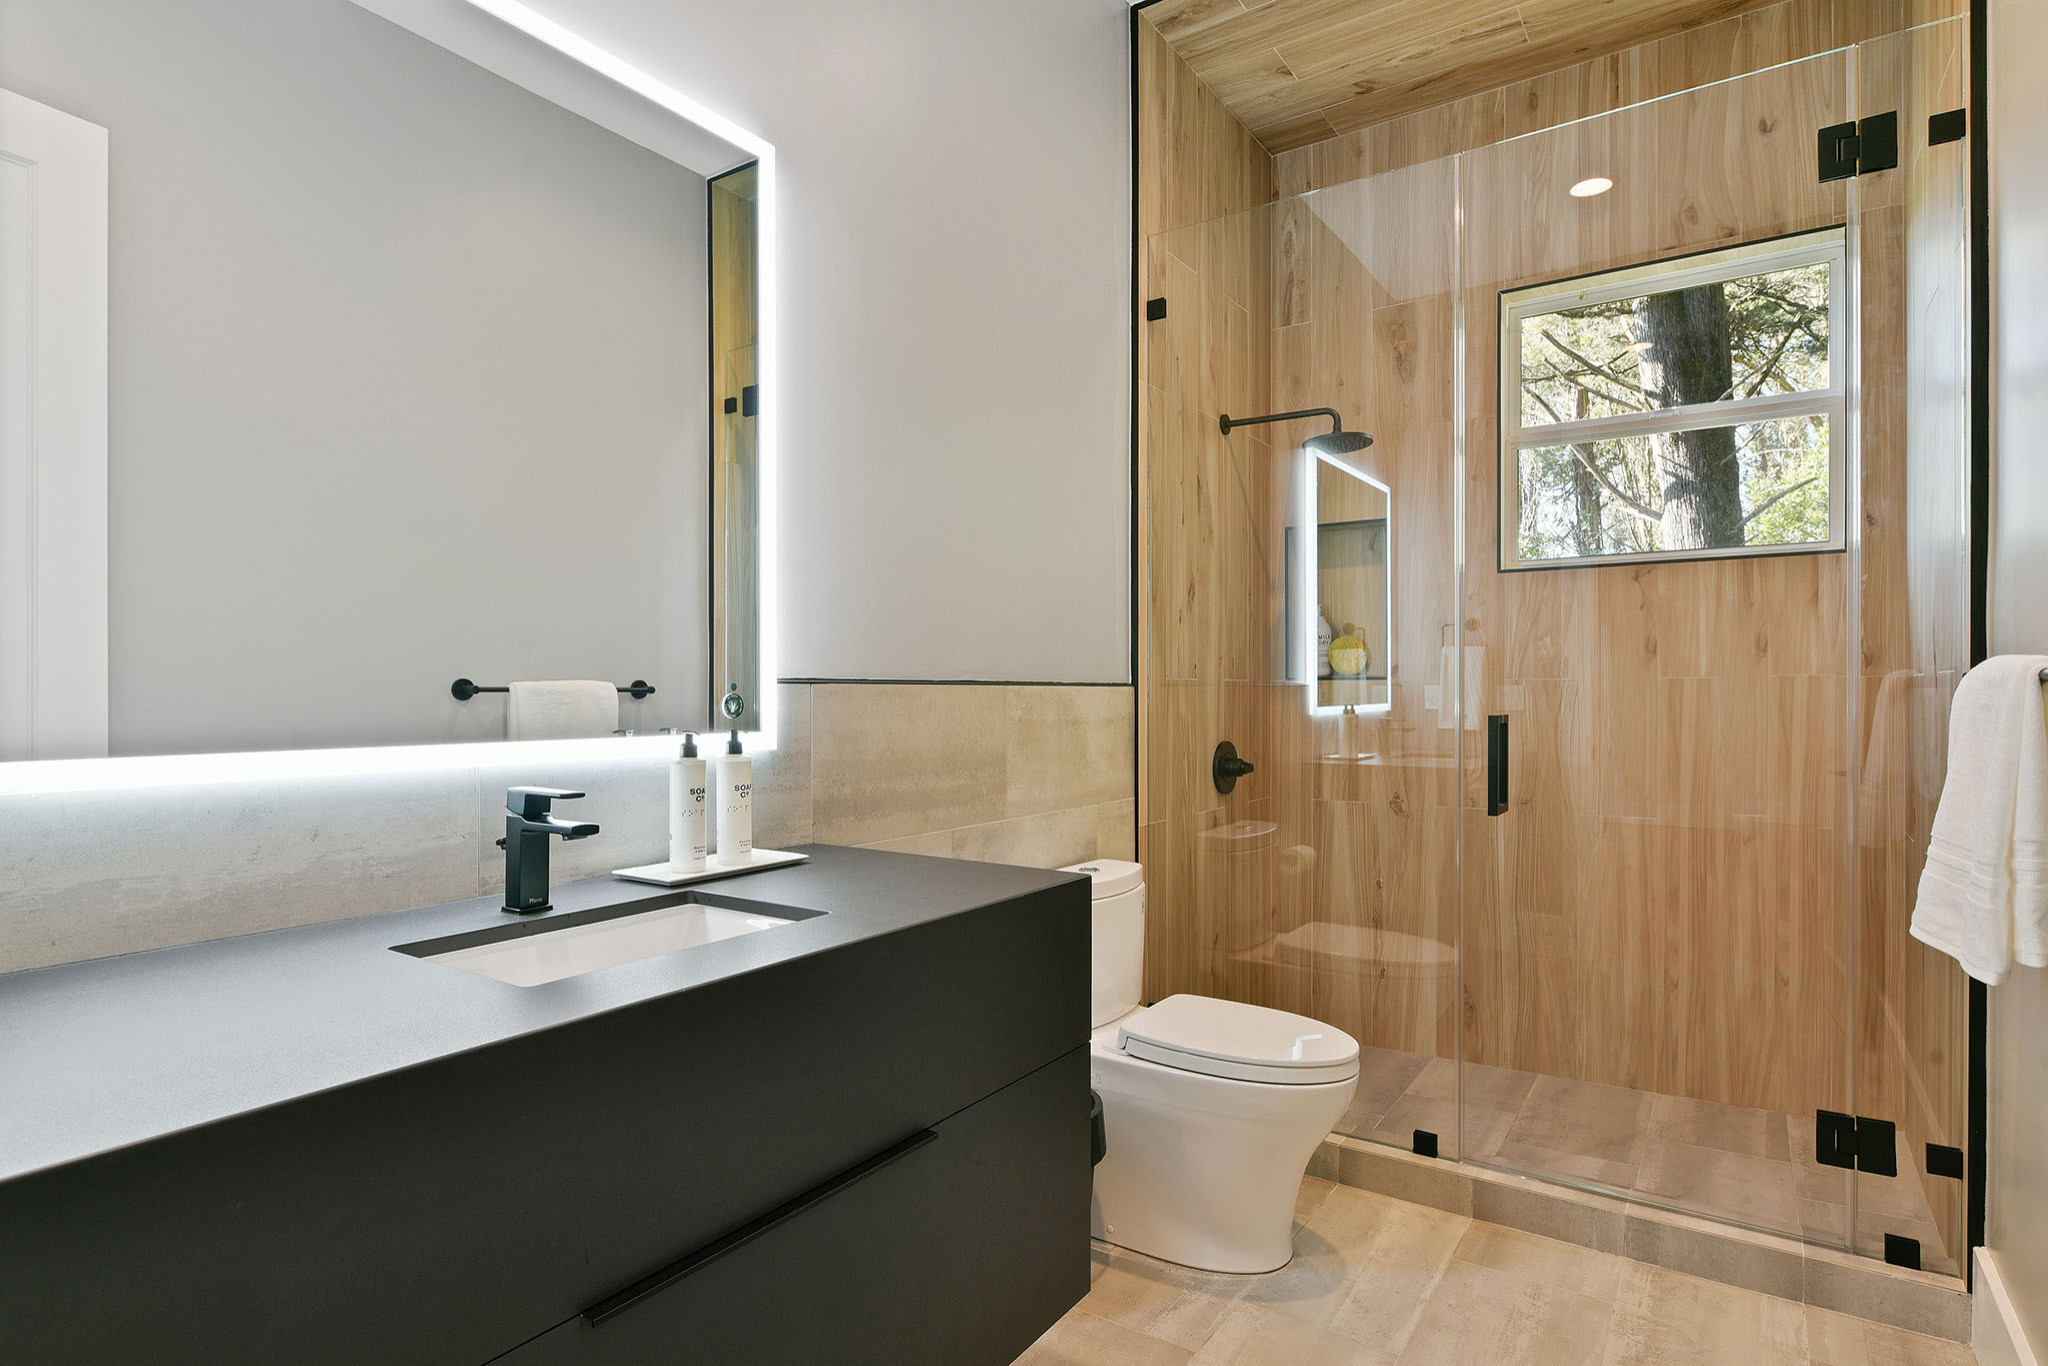 75 Beautiful Brown Tile Bathroom With Black Cabinets Pictures Ideas March 2021 Houzz